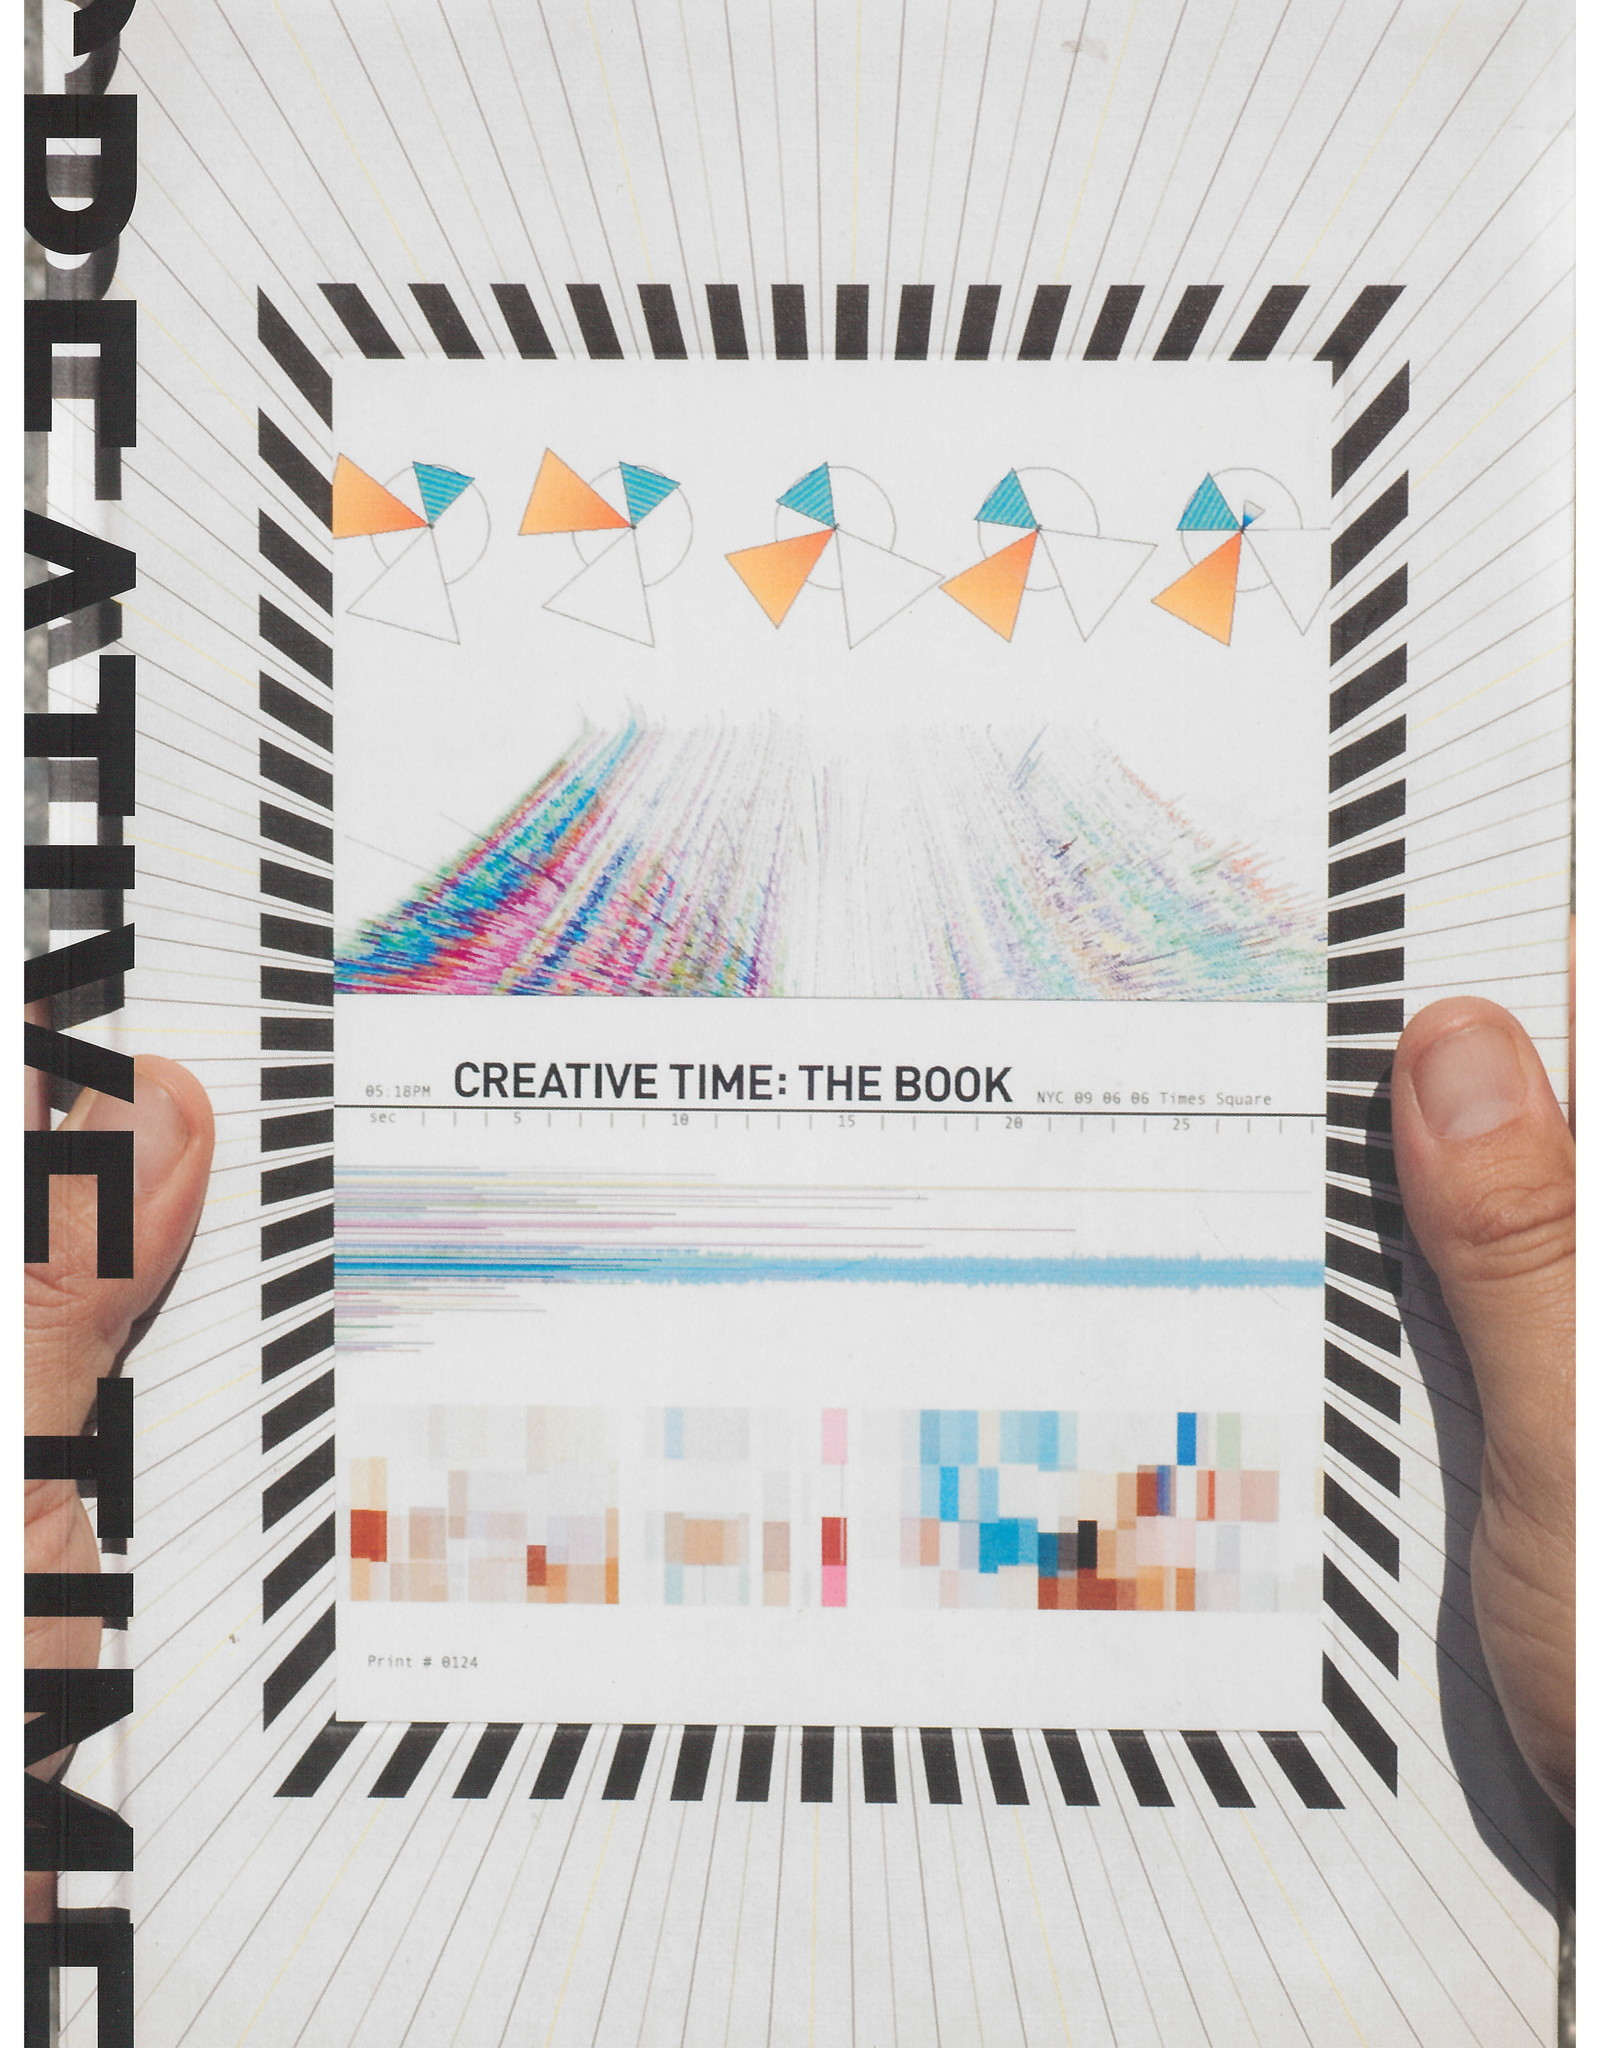 Creative Time: The Book / Anne Pasternak